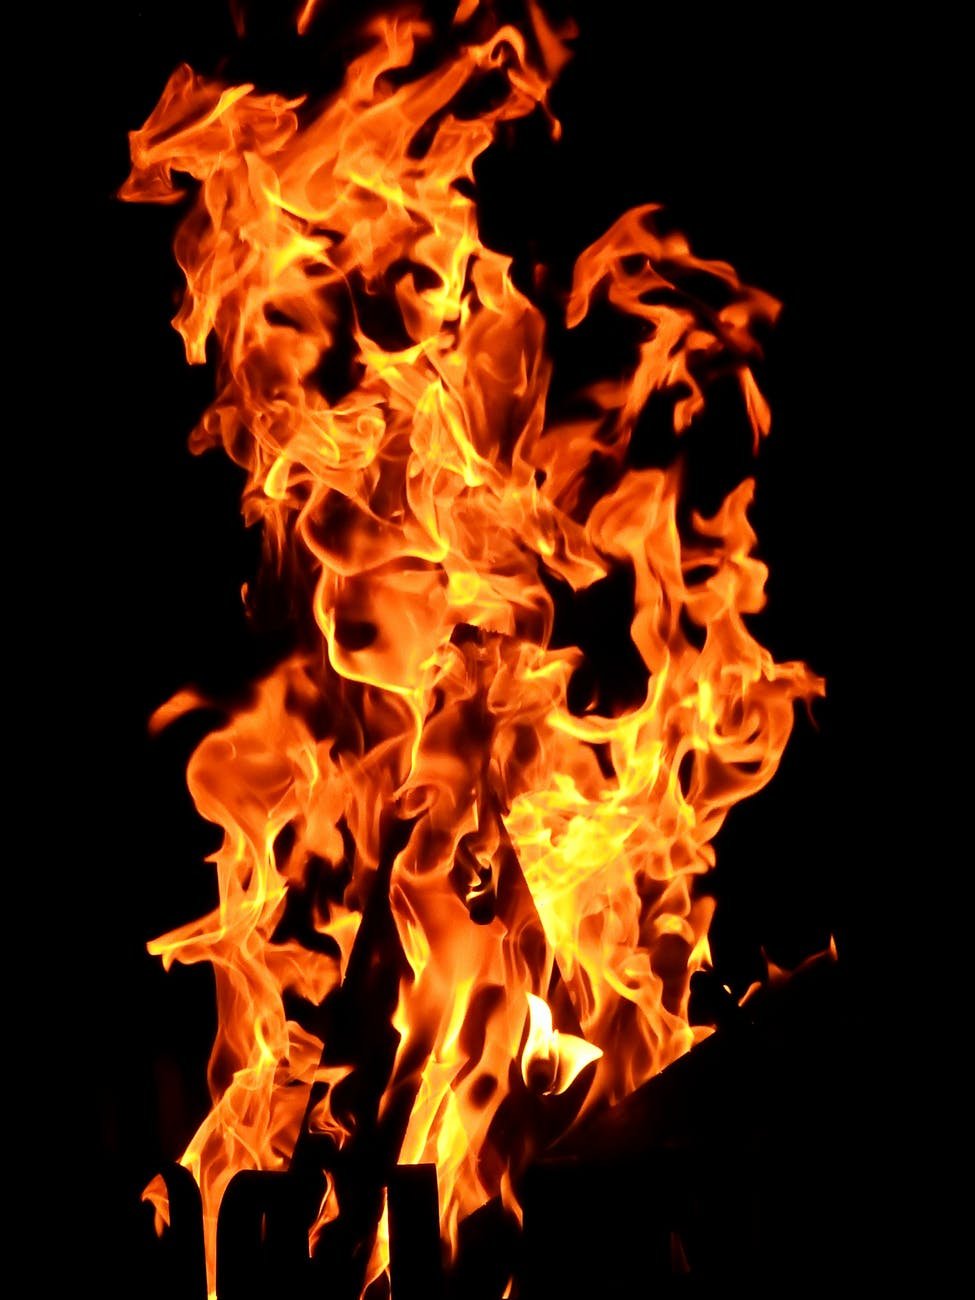 fire wallpaper